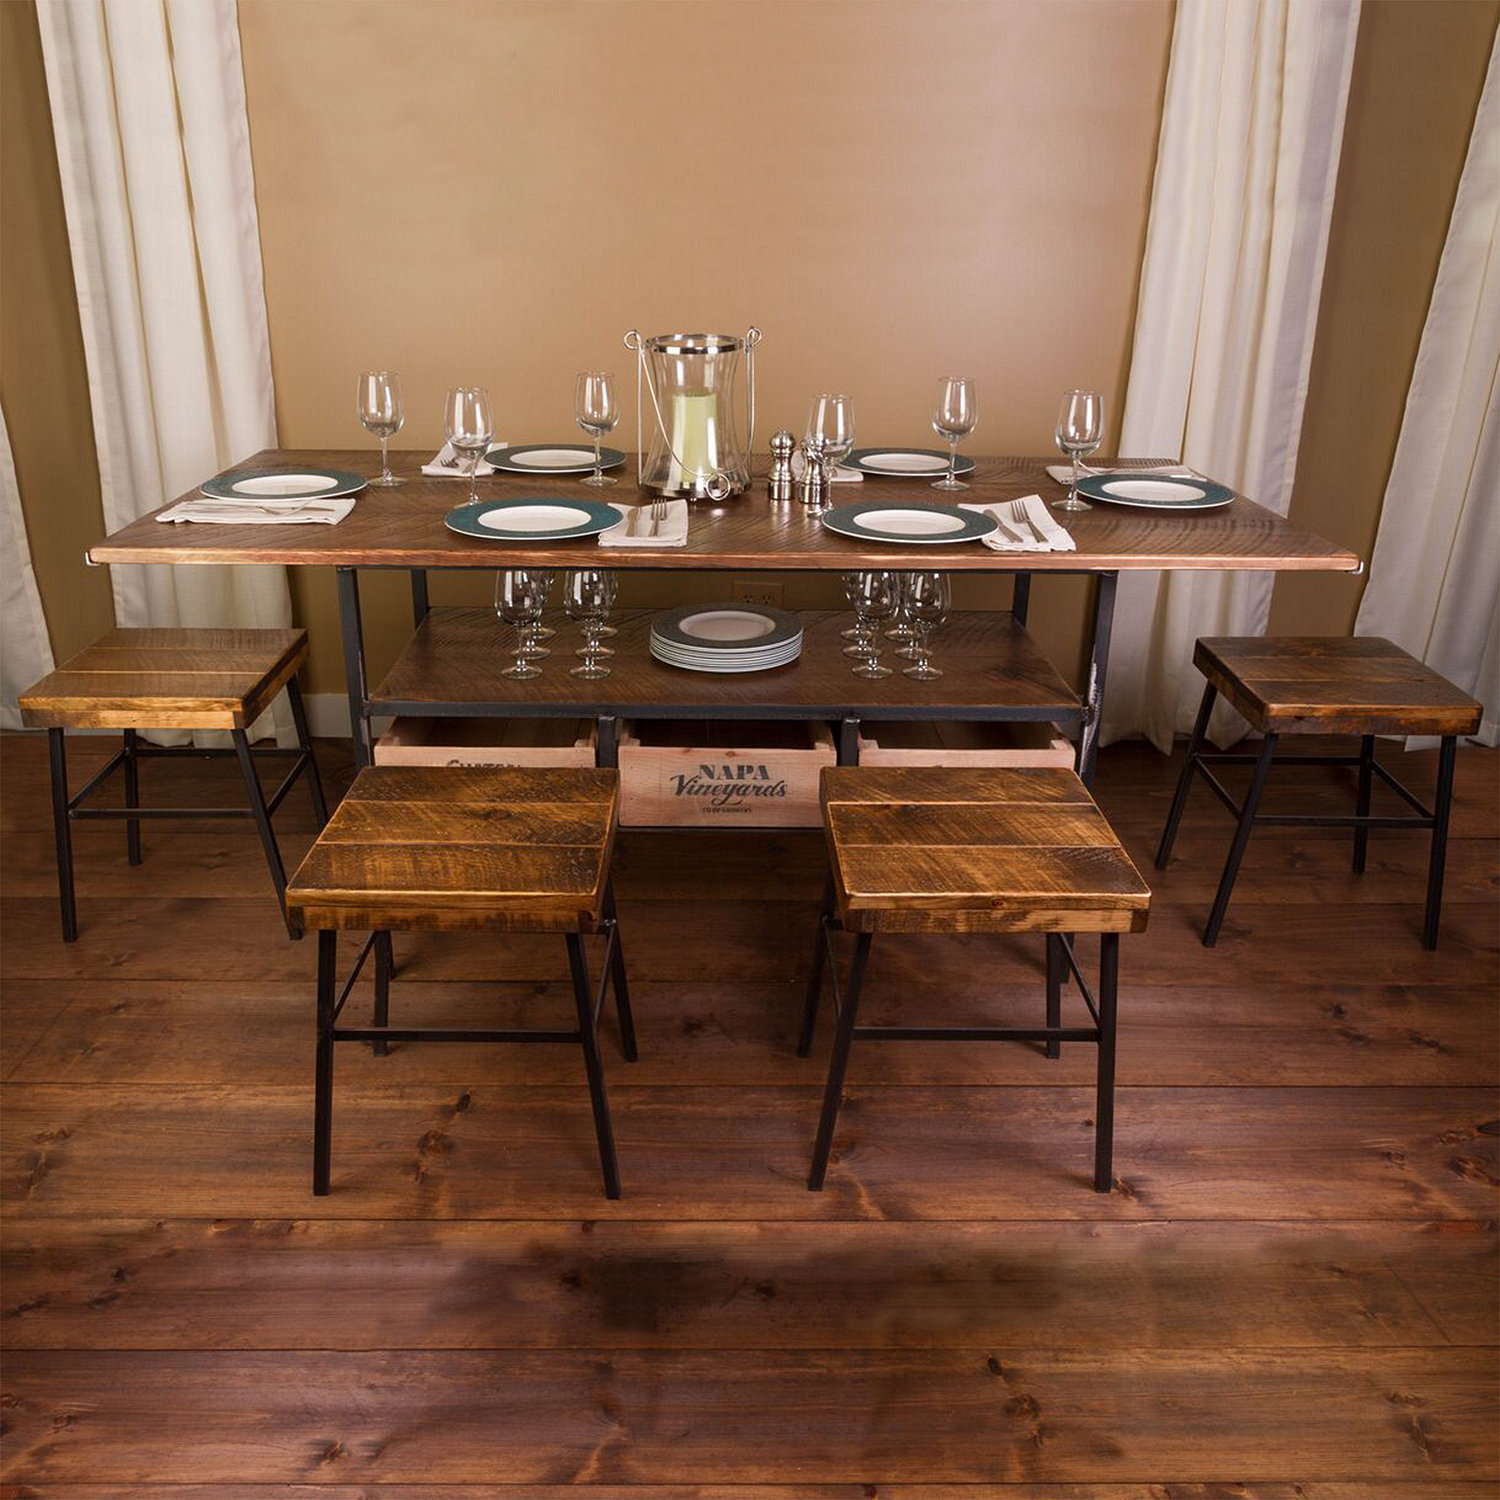 ... Farm Style Dining Table With 4 Cellar Stools. SALE. Preparing Zoom